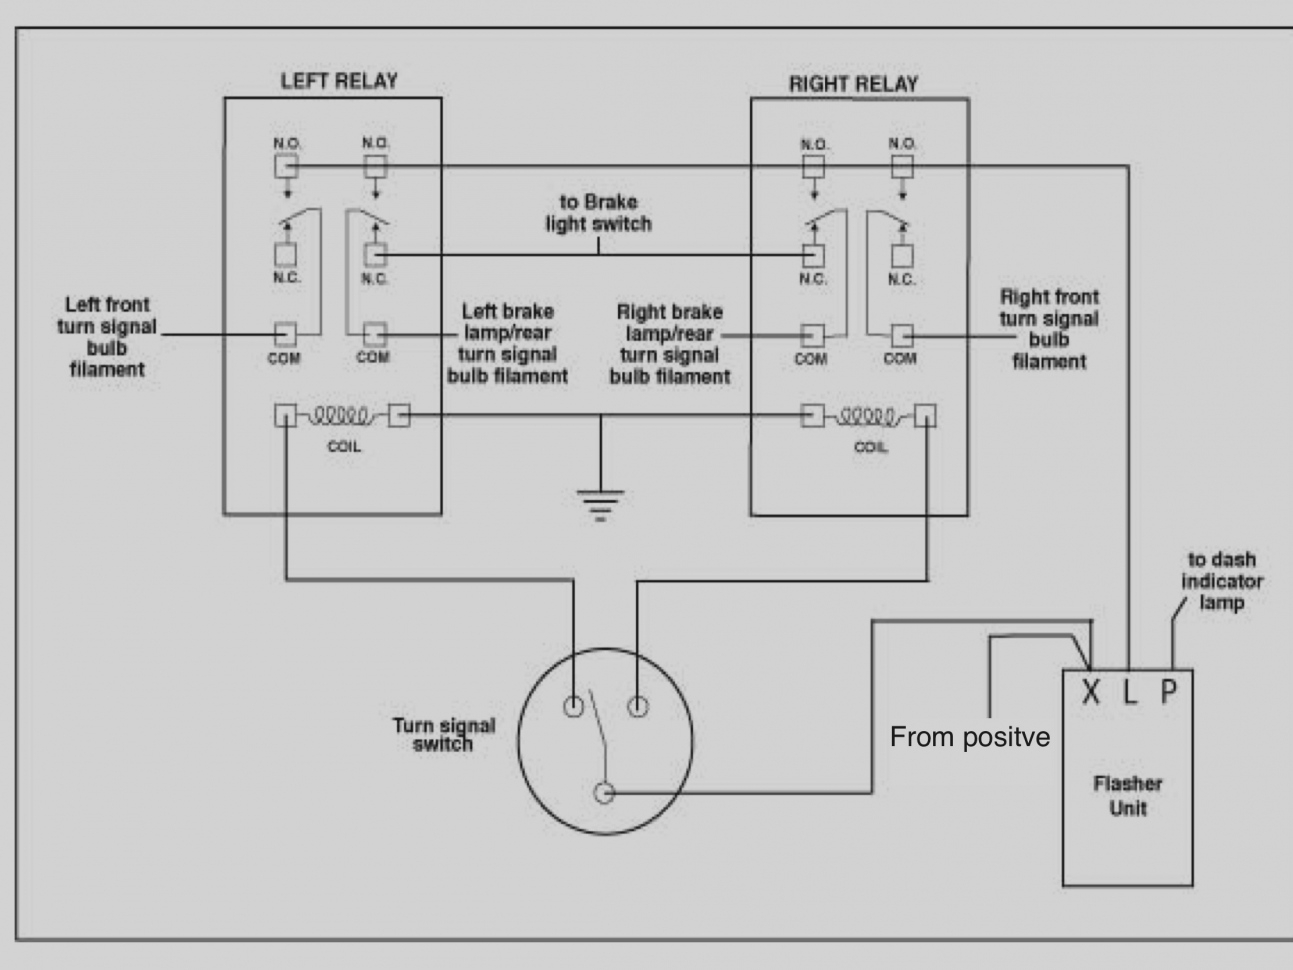 wiring diagram for polaris ranger 800 xp 11 1 kenmo lp de \u2022rzr xp wiring diagram schematic diagram today rh 6 12 rassekaninchenzucht lange de polaris rzr 800 wiring diagram wiring diagram for 2012 polaris ranger 800